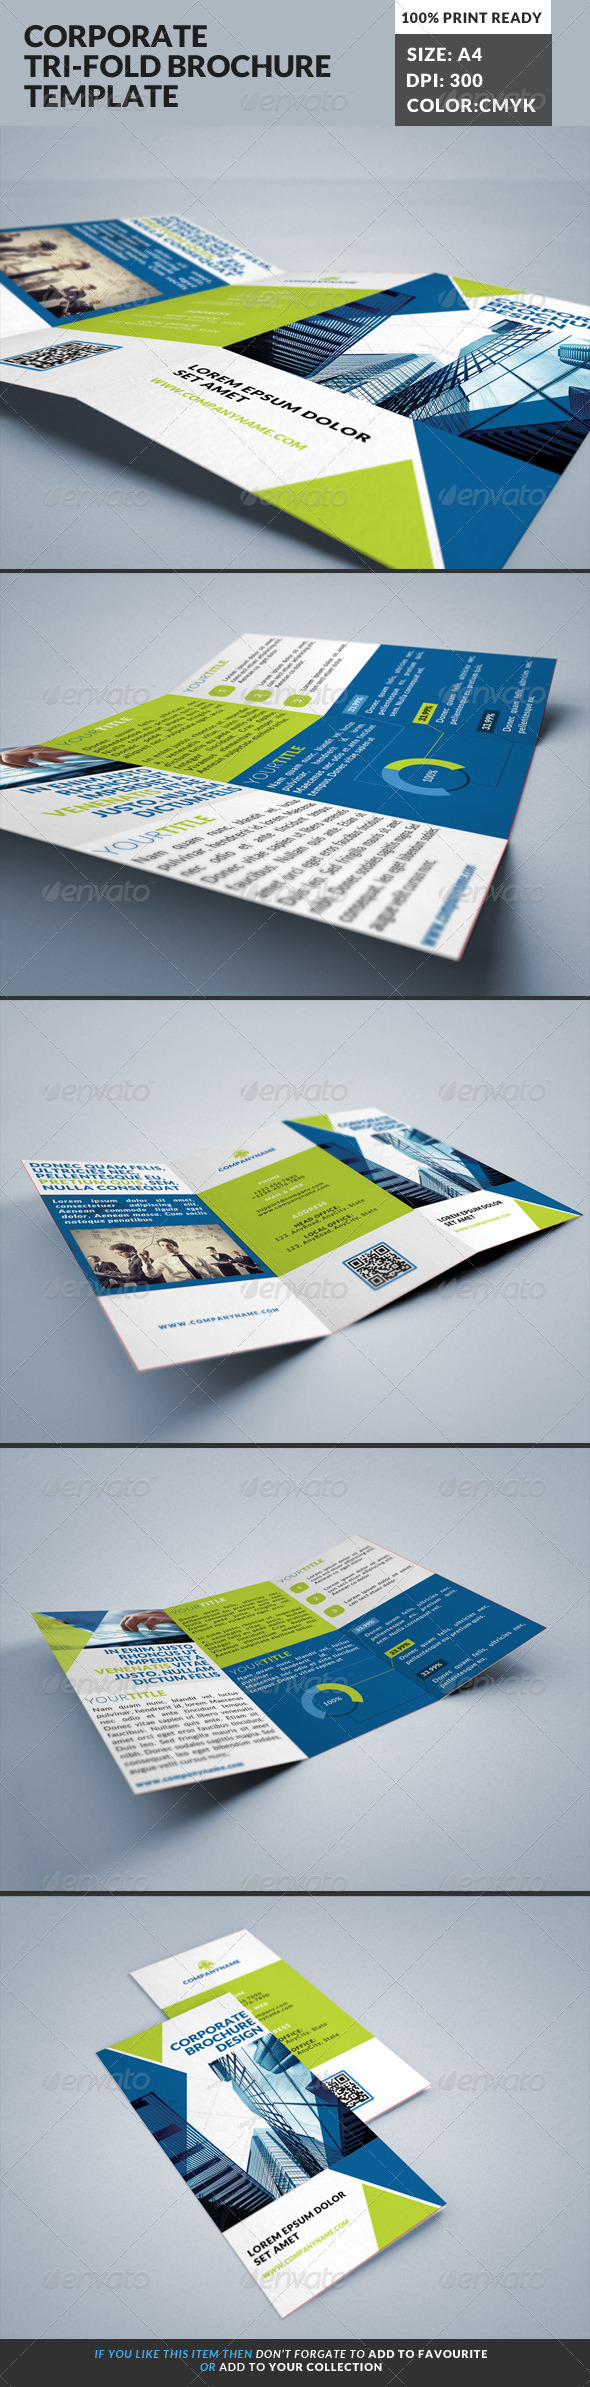 GraphicRiver Corporate Tri-Fold Brochures Template 19 8505502